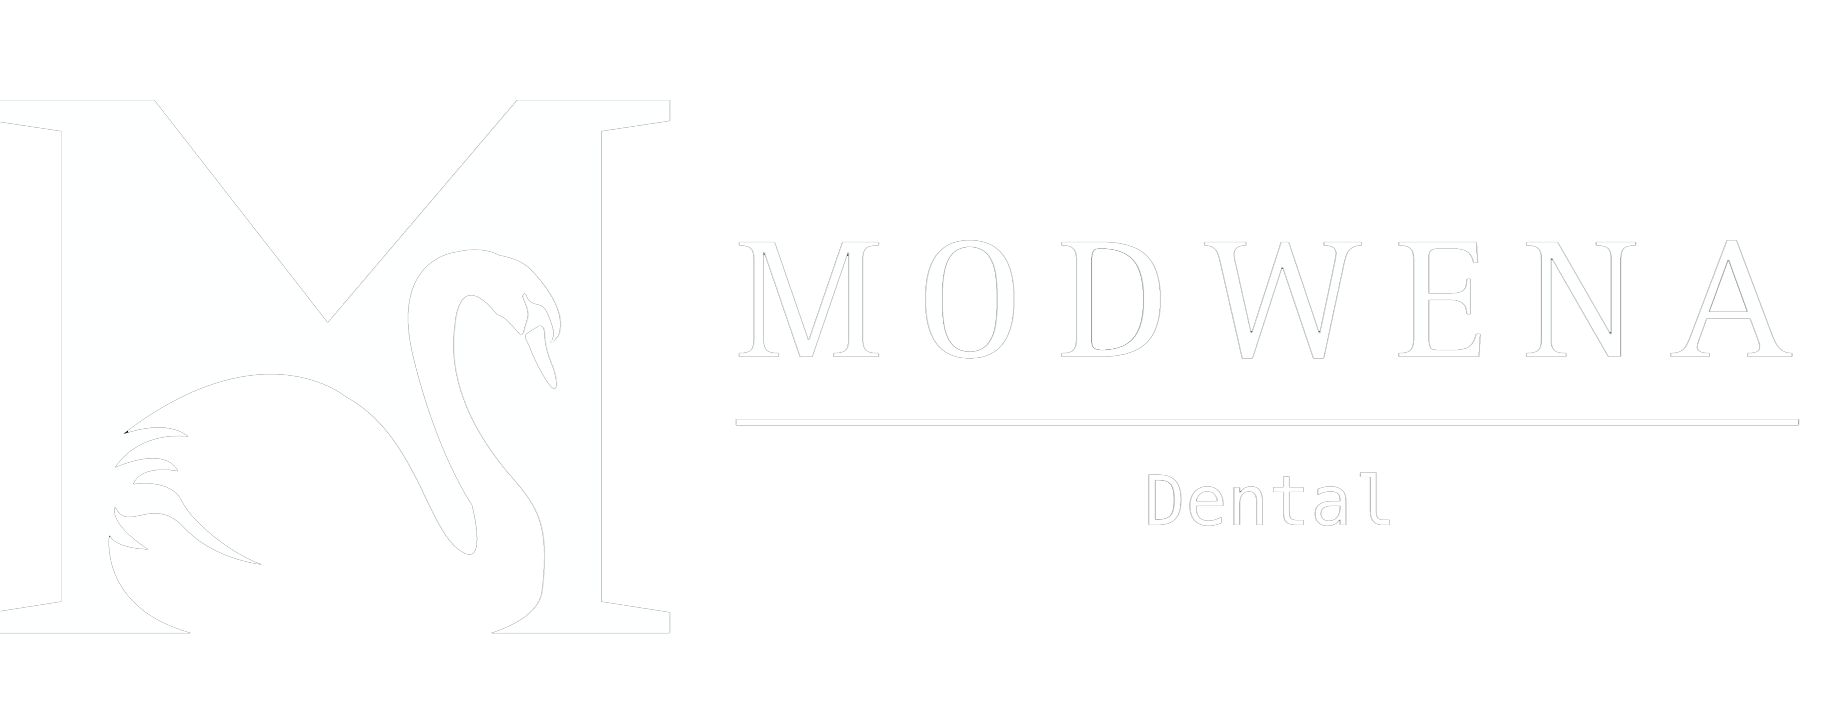 Modwena Dental